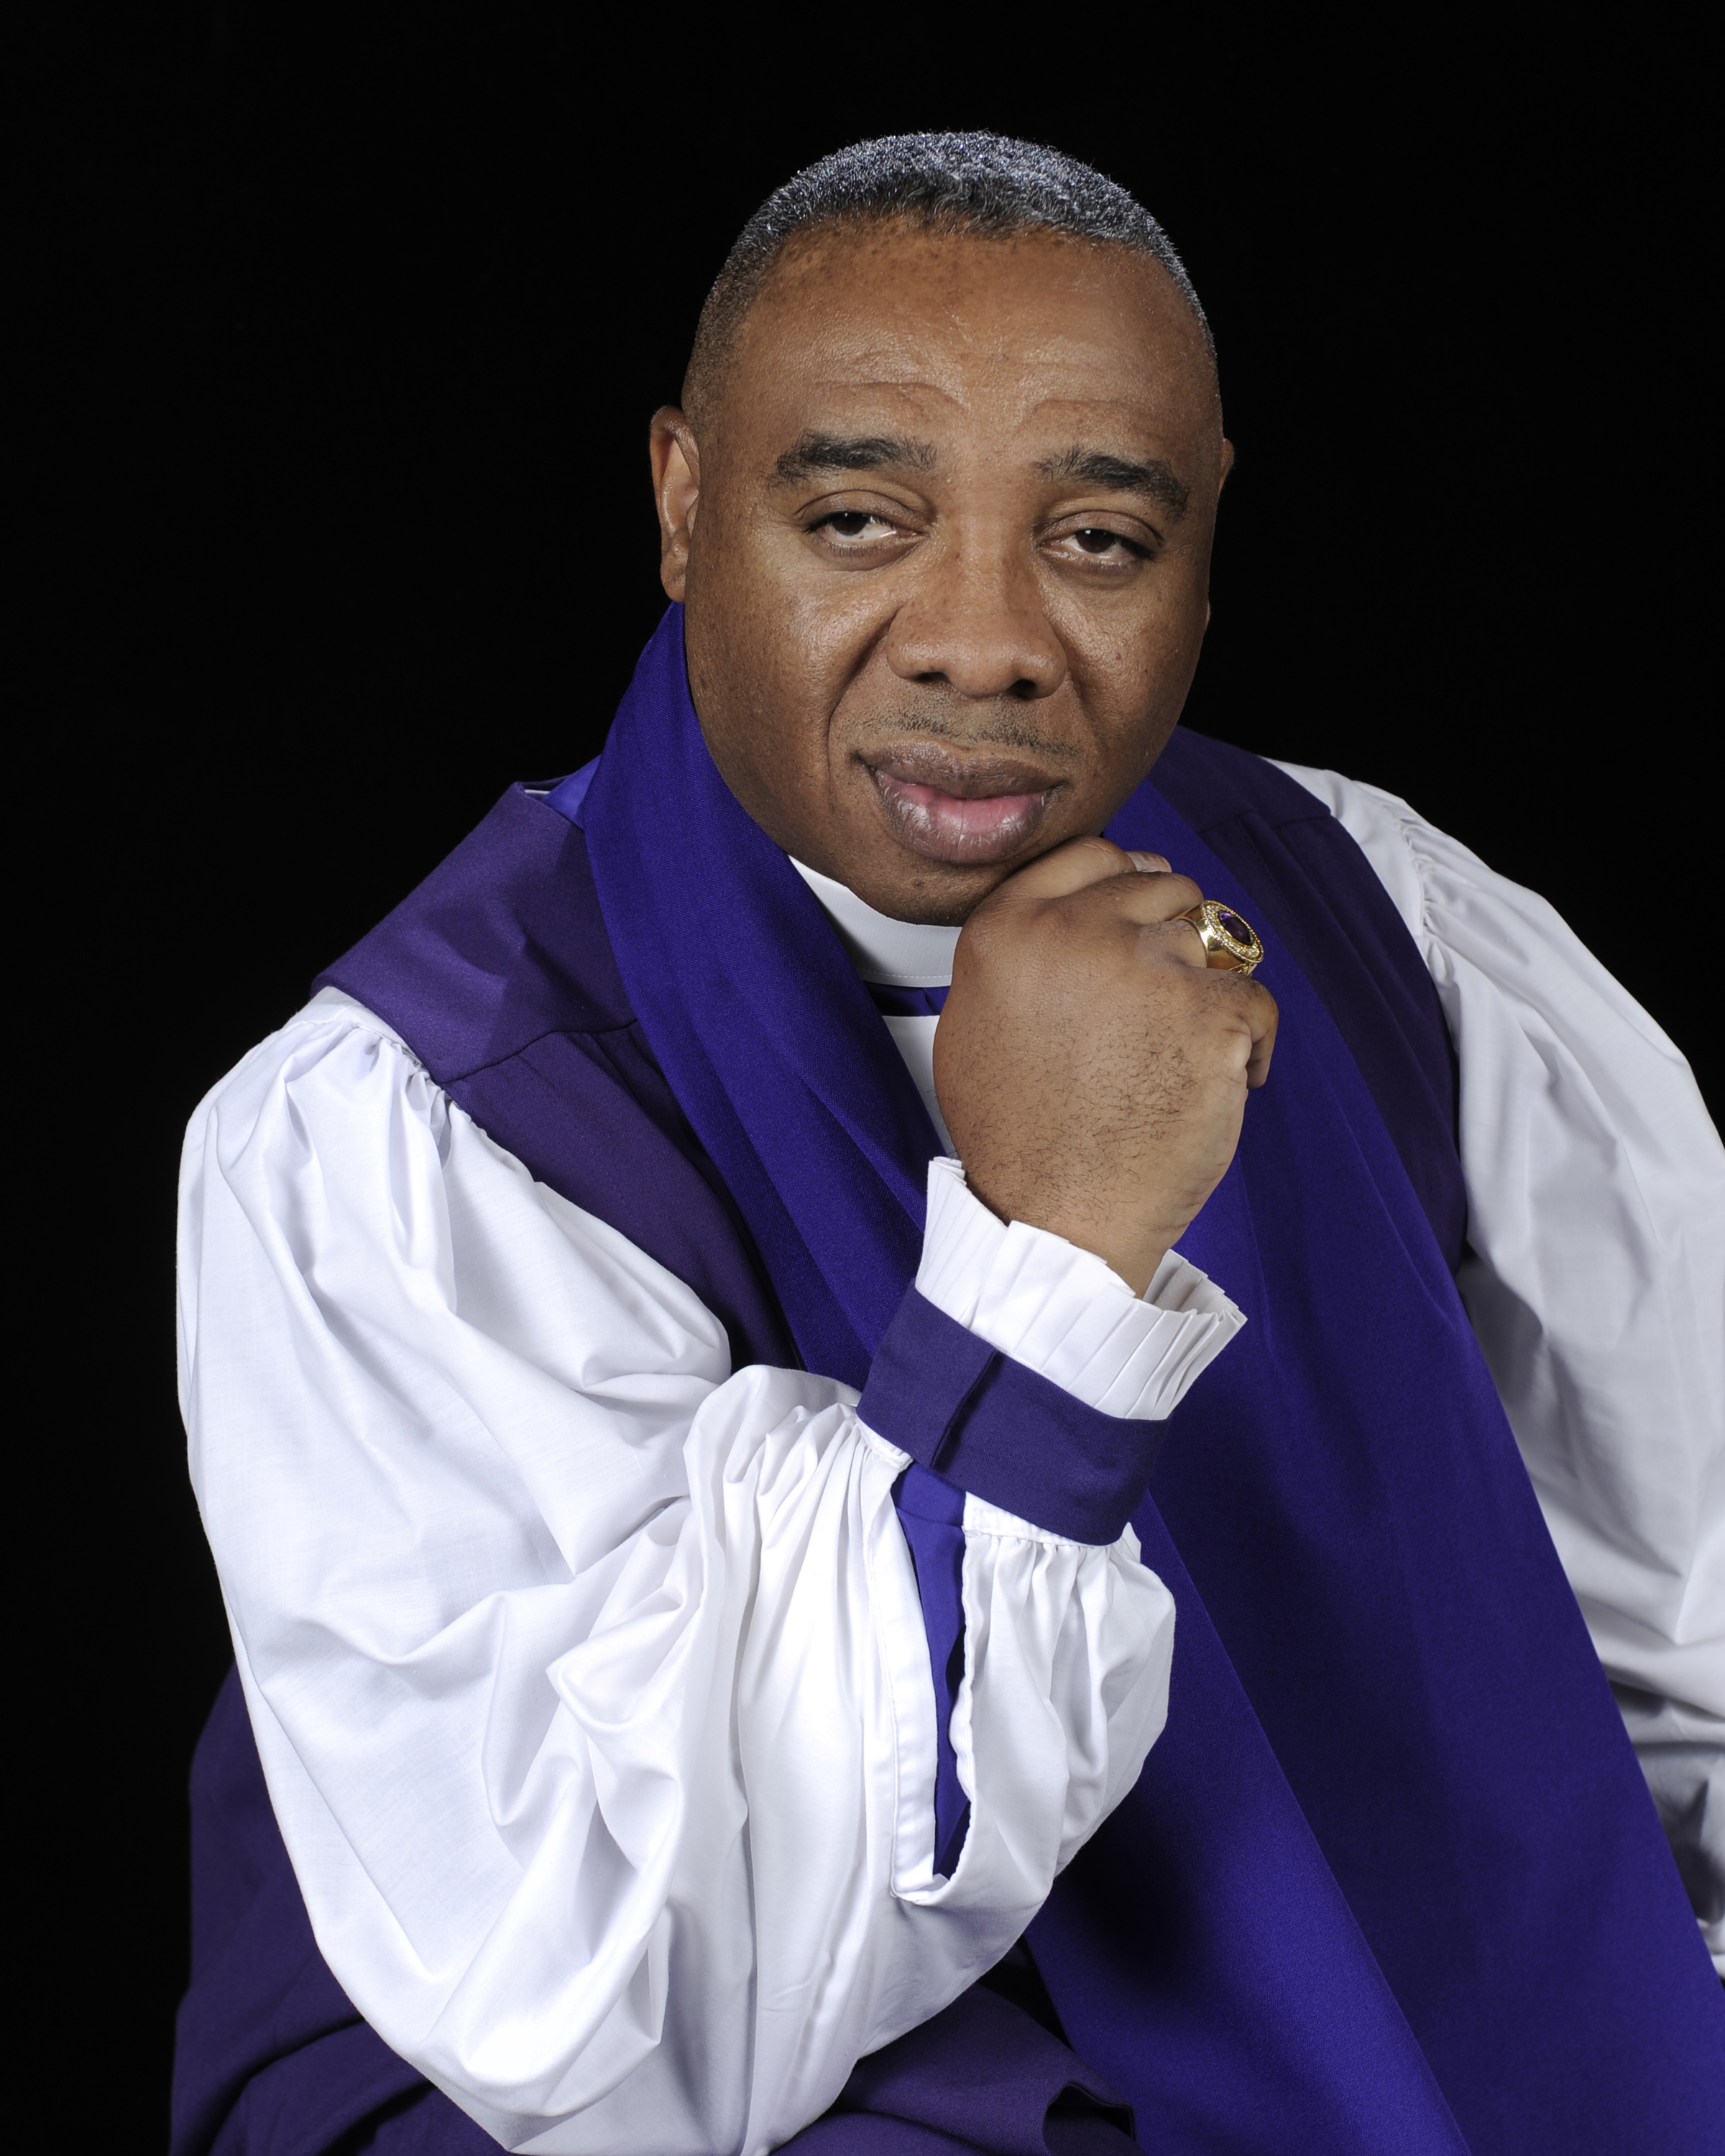 Bishop J,. L'Keith Jones